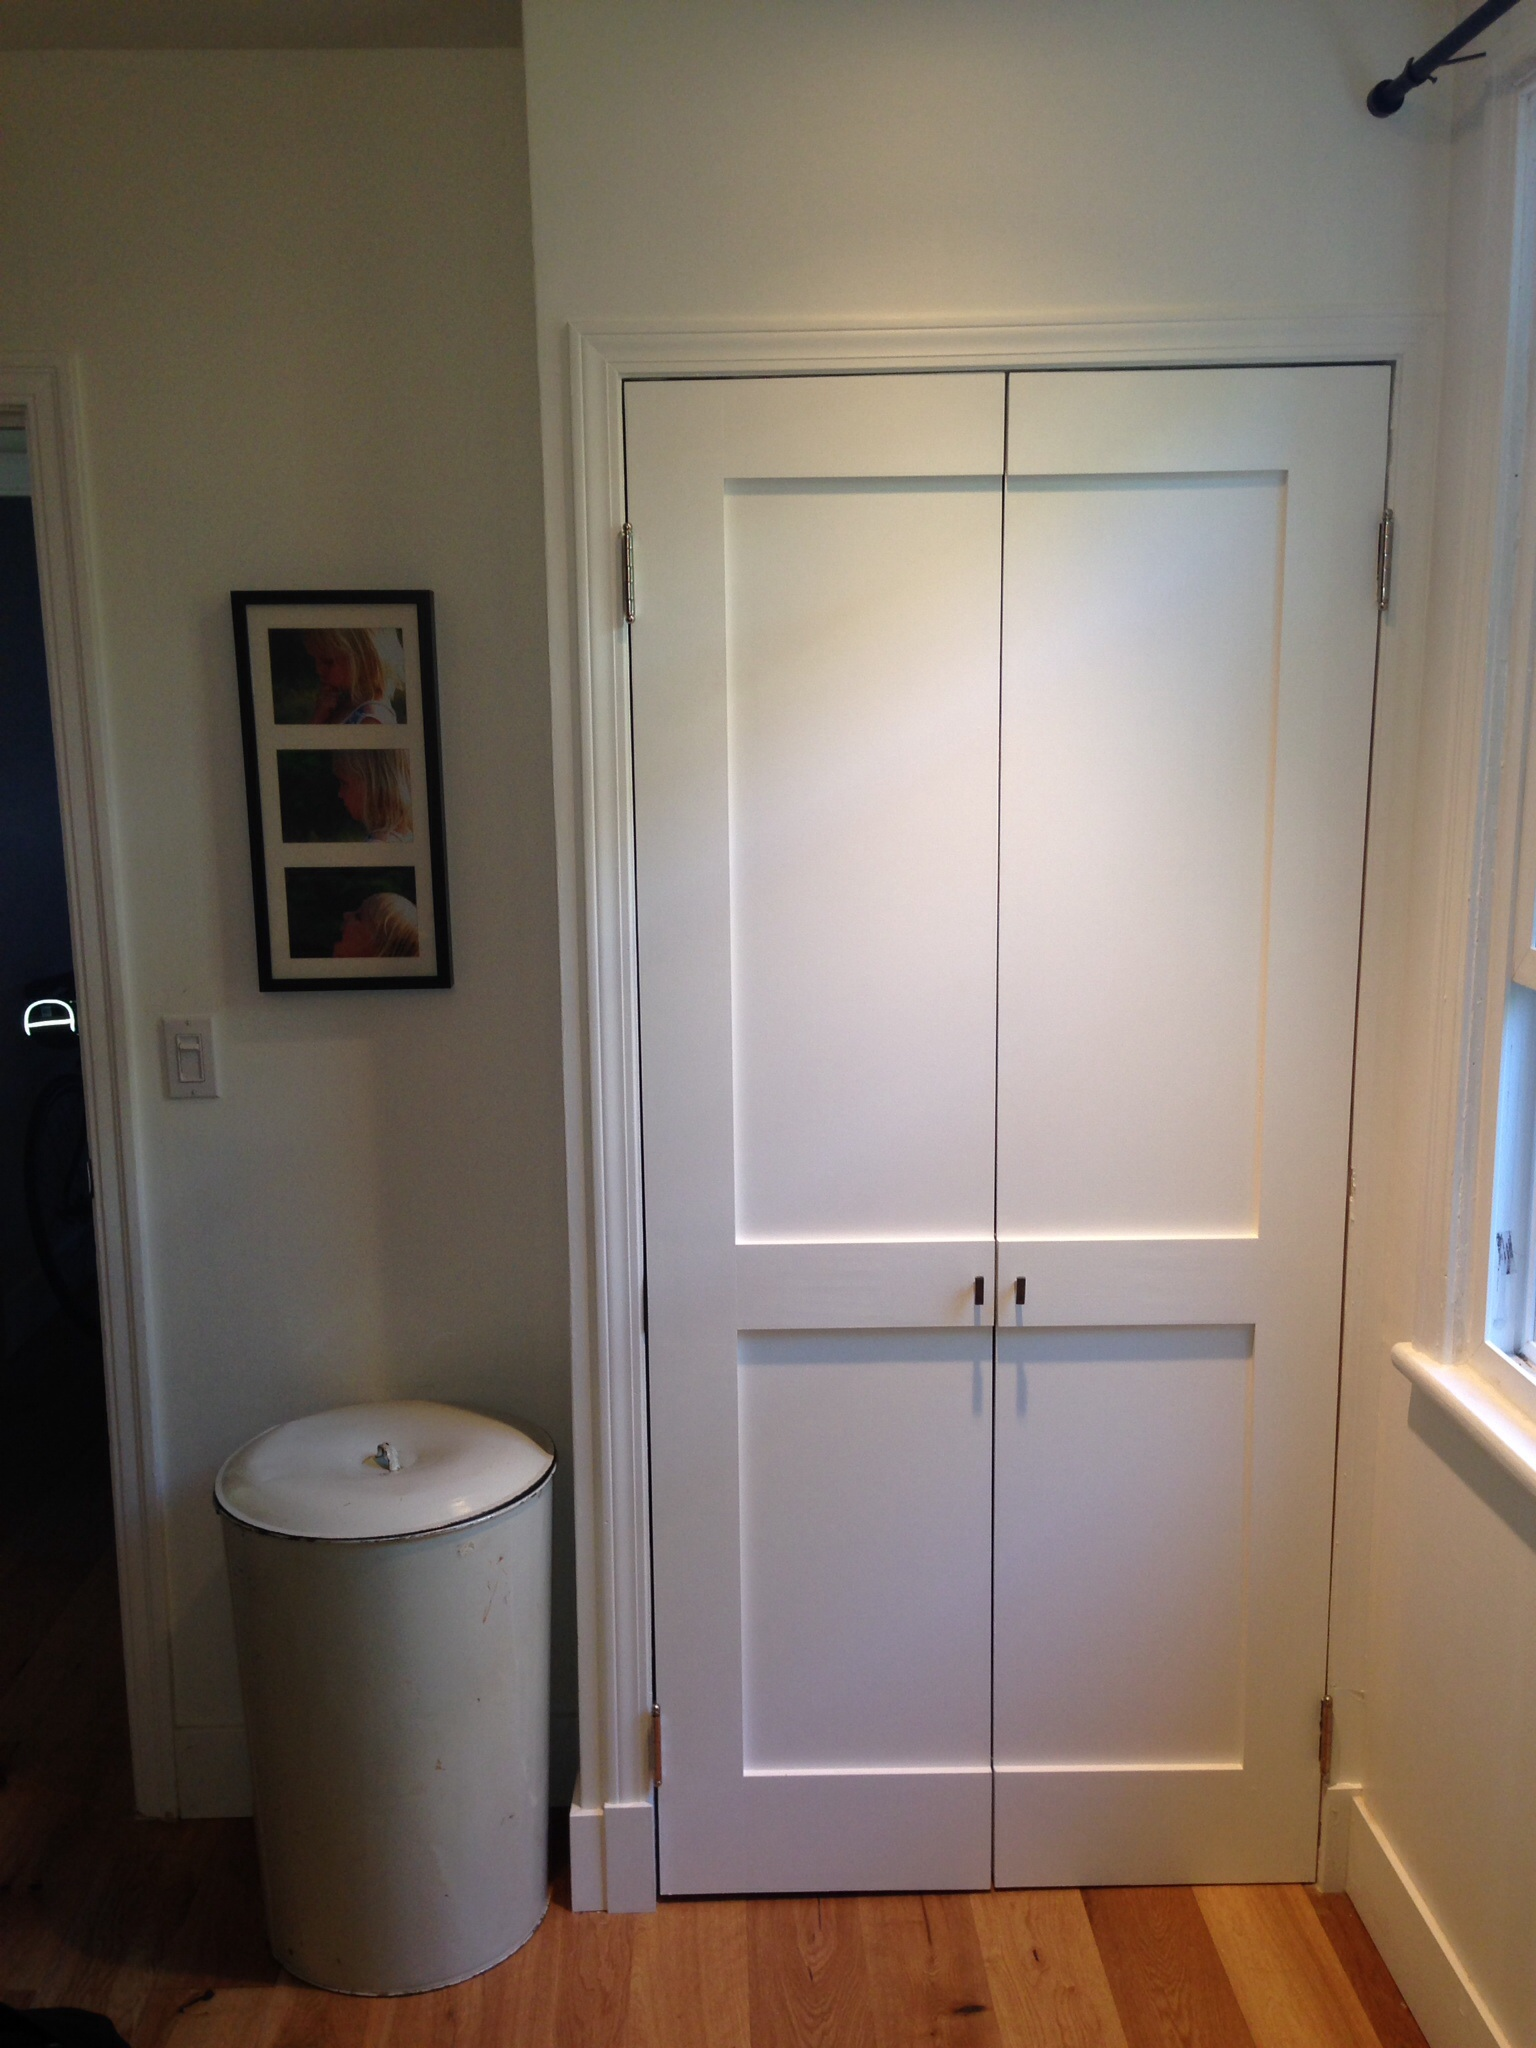 ... doors cut them down the center and install with hinges on either side. For sure there is some sizing and added trim required but in this old/new house ... & Nice Closet Door Alternative | Monica Gust